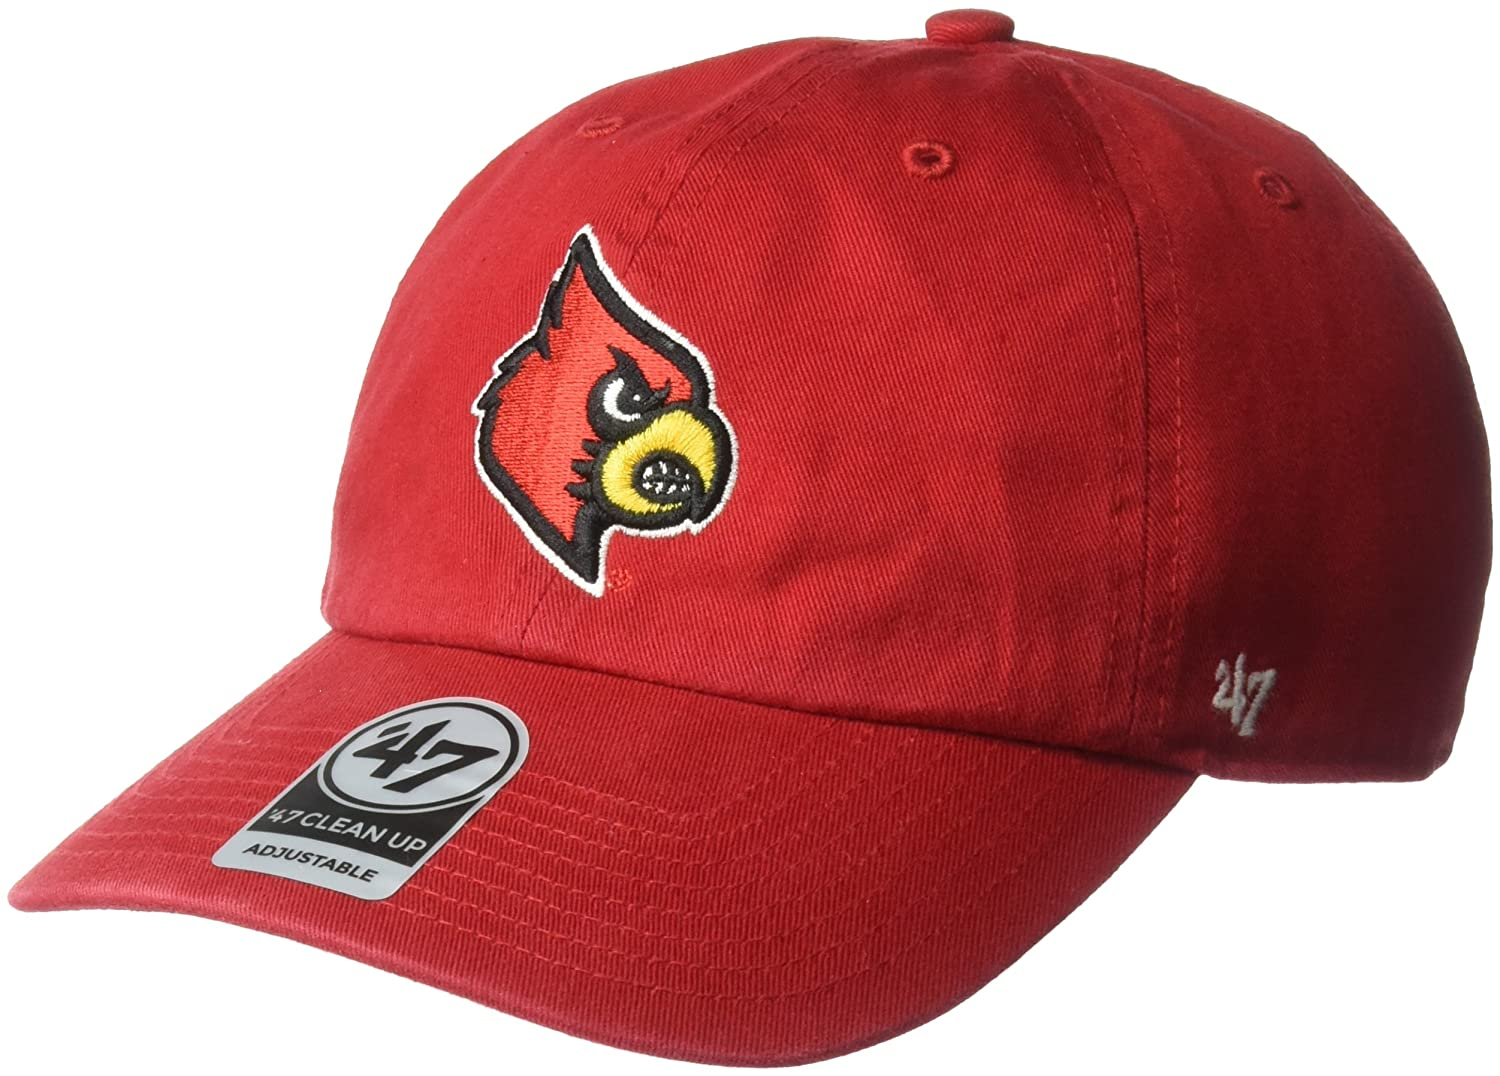 50e5effddd4 Amazon.com    47 NCAA Louisville Cardinals Clean Up Adjustable Hat ...